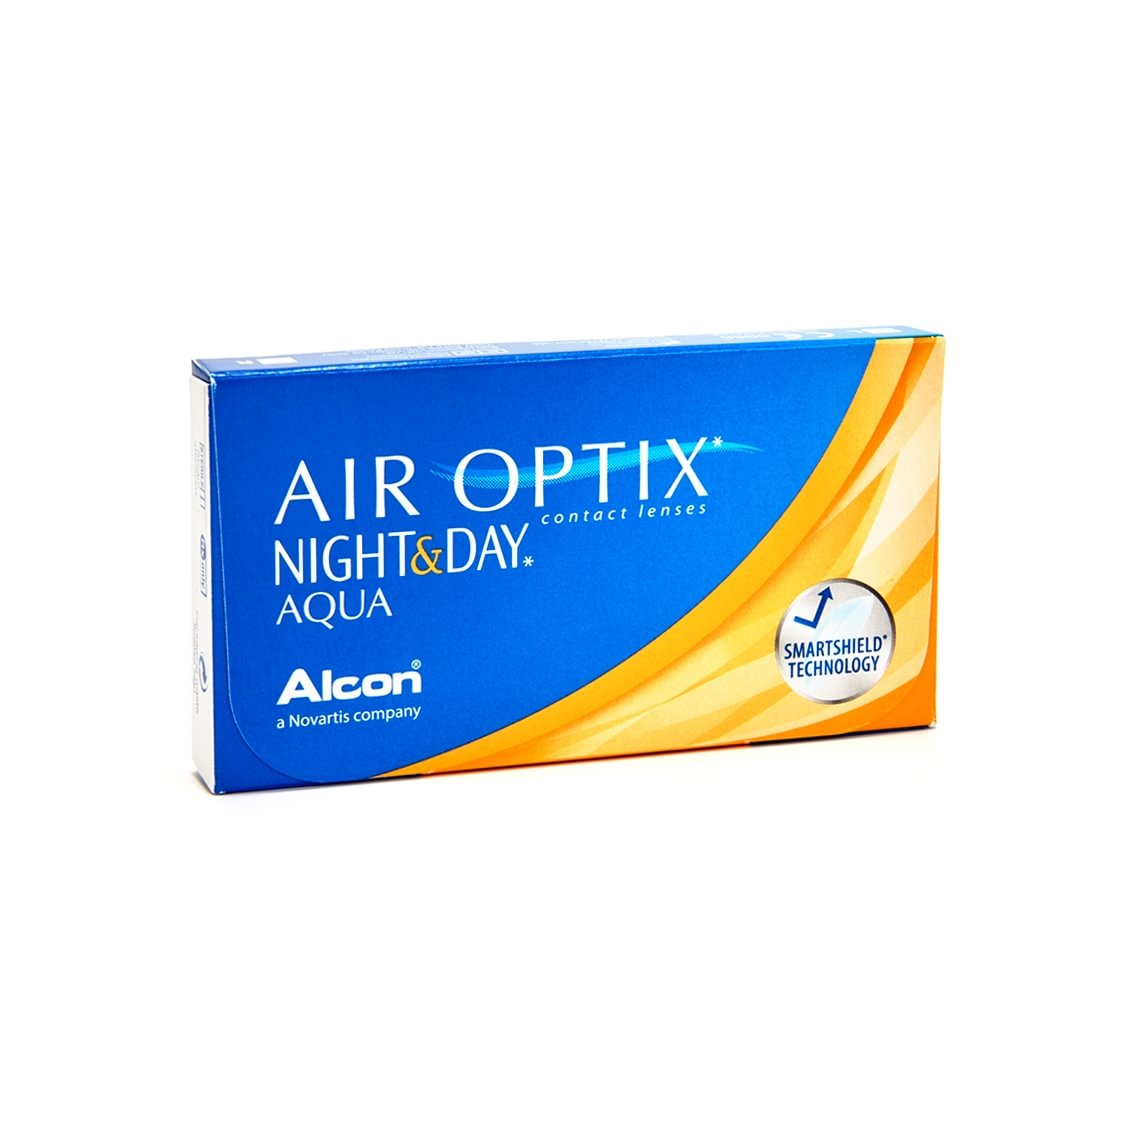 Air Optix Night&Day Aqua 6 stk/pk